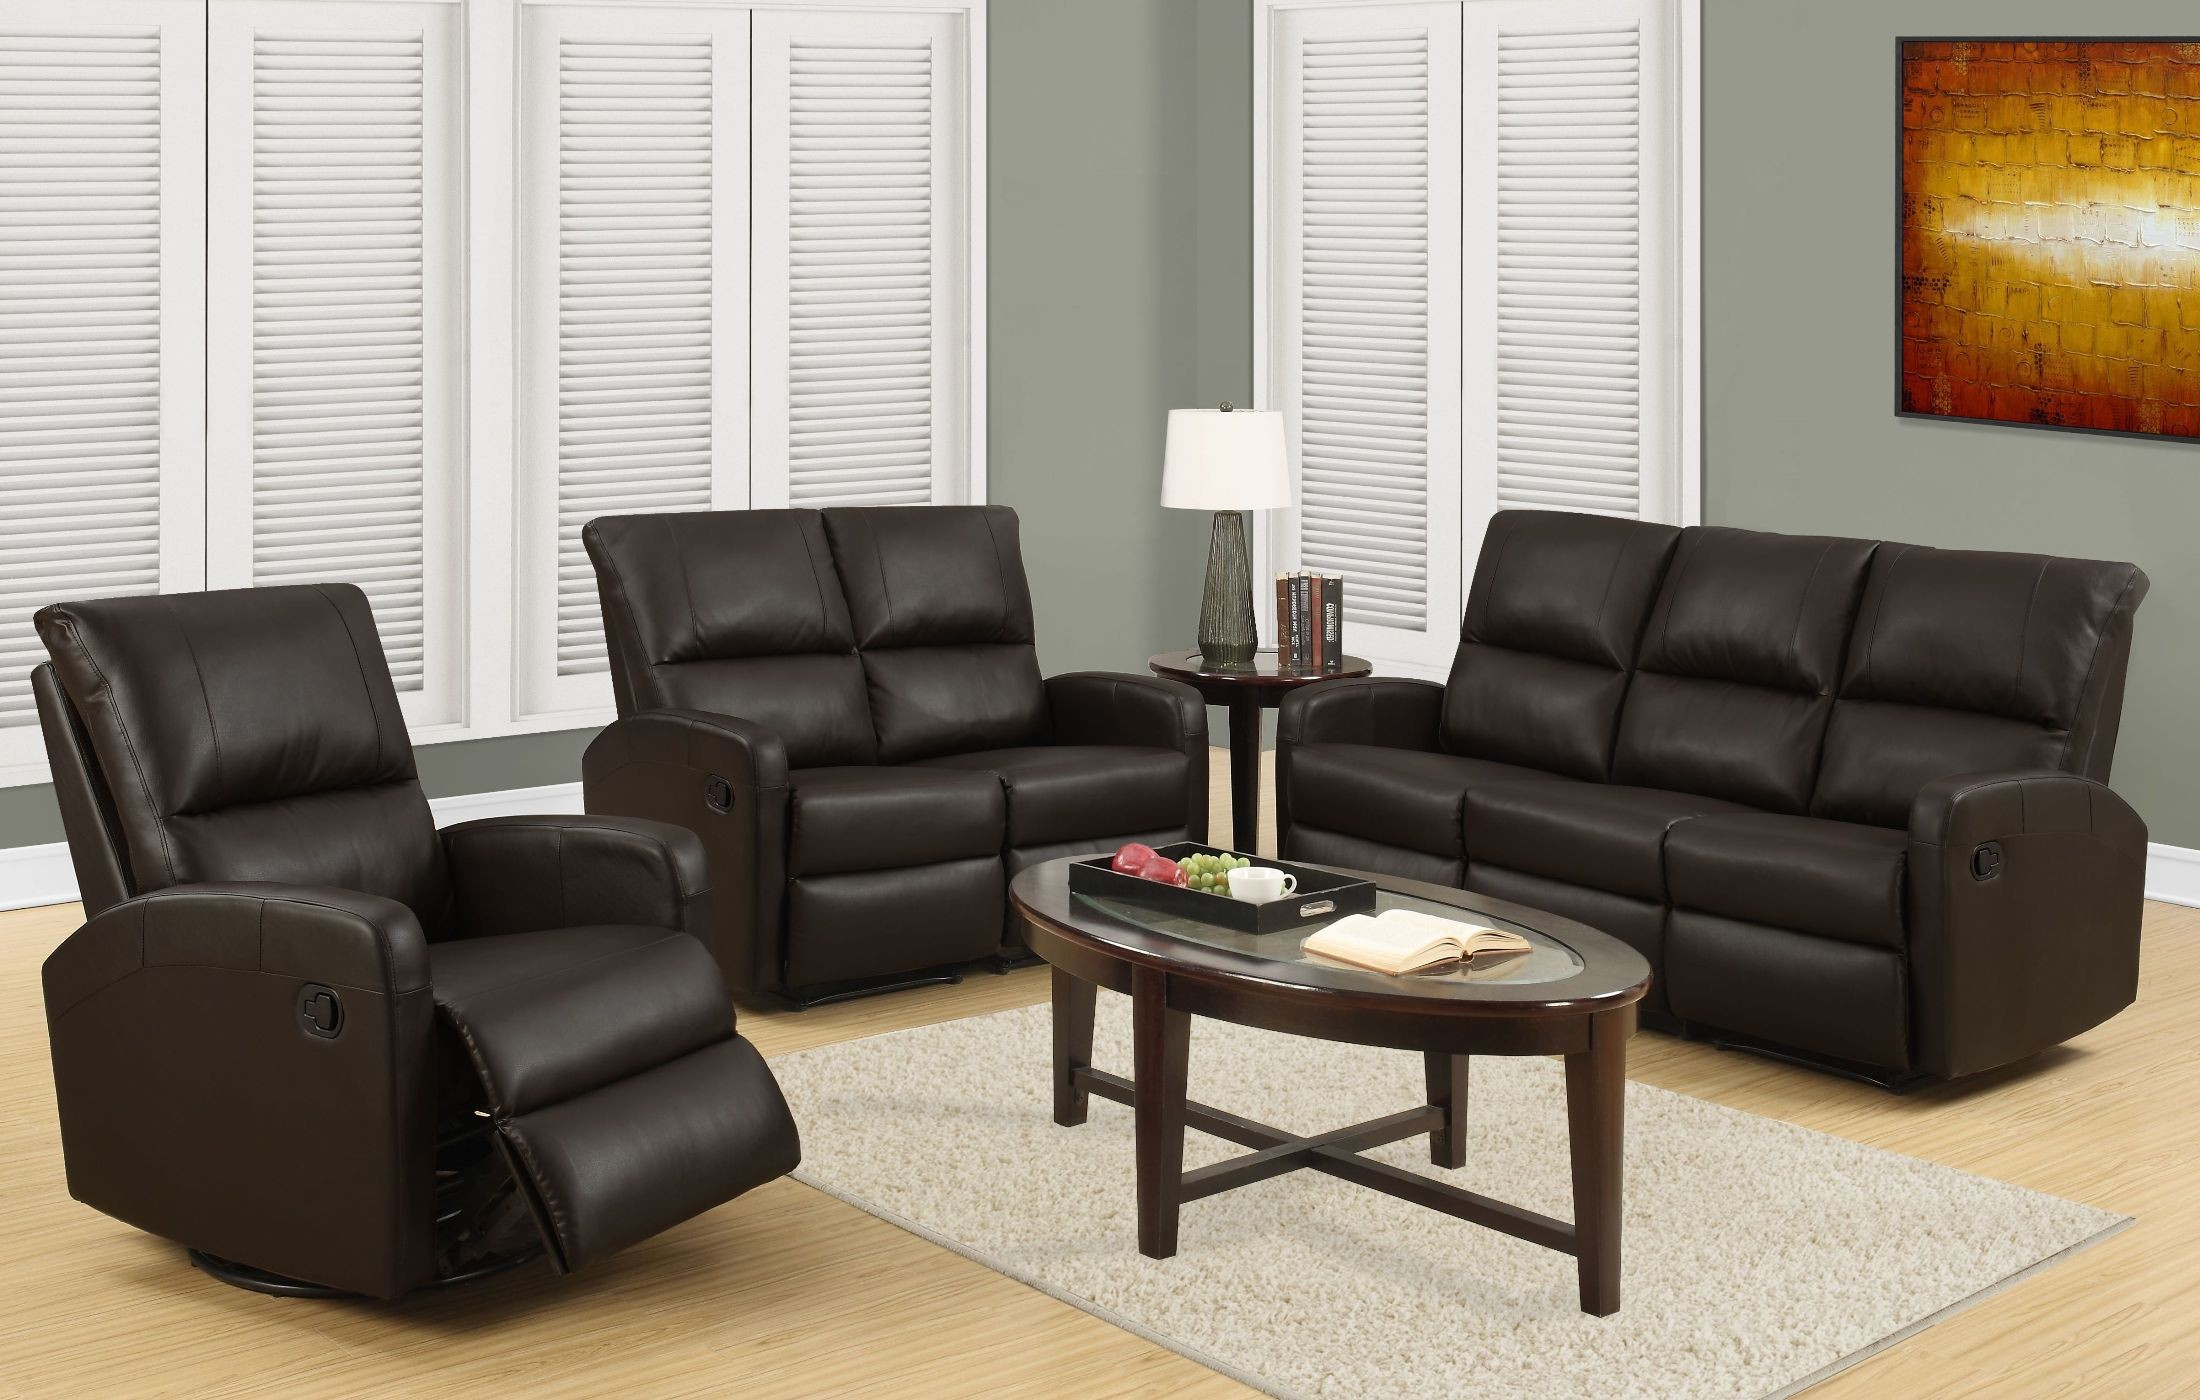 84br 3 dark brown bonded leather reclining living room set 84br 3 monarch. Black Bedroom Furniture Sets. Home Design Ideas